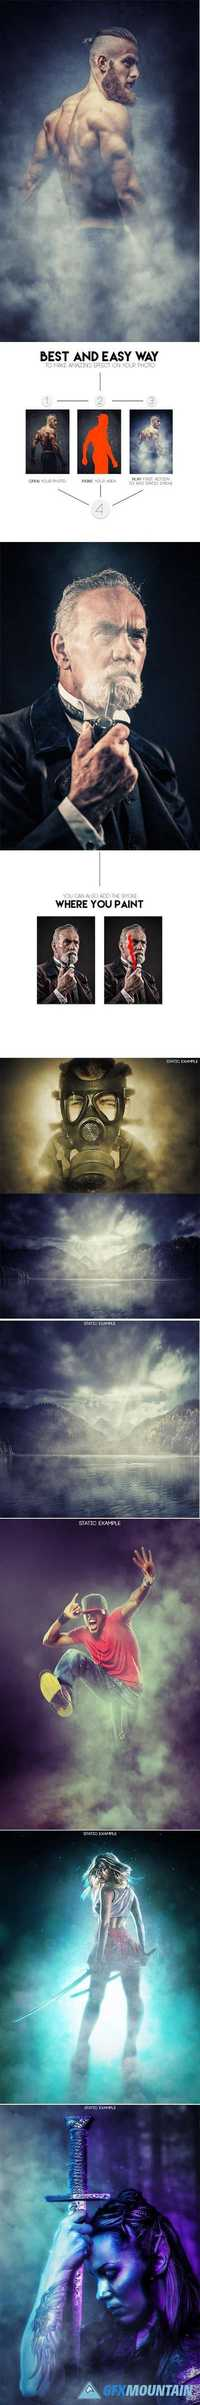 GraphicRiver - Animated Smoke Photoshop Action 17527624 » Free